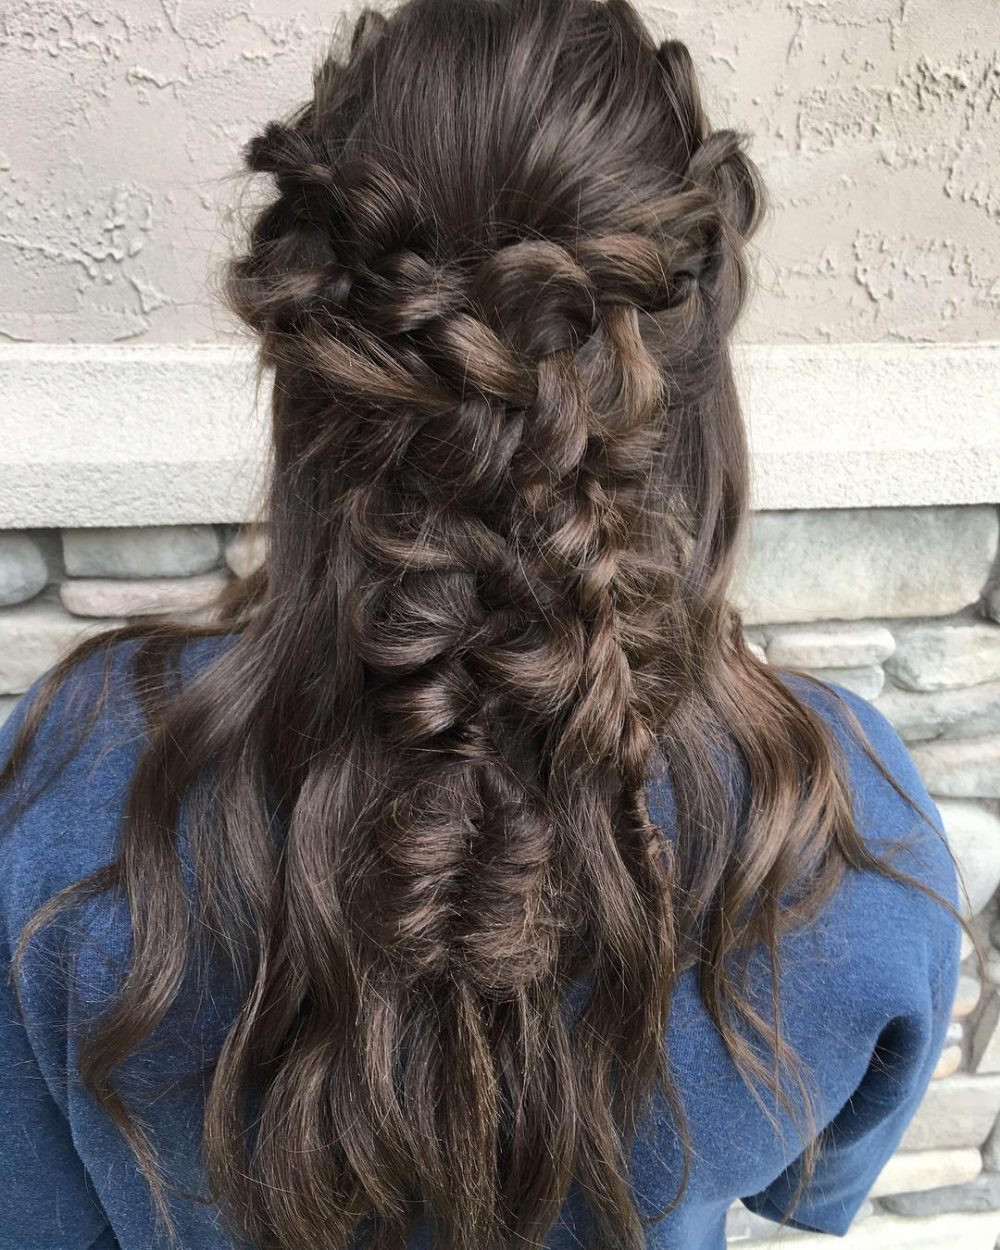 Pageant Hairstyles For Long Hair  31 Prom Hairstyles for Long Hair That Are Gorgeous in 2019